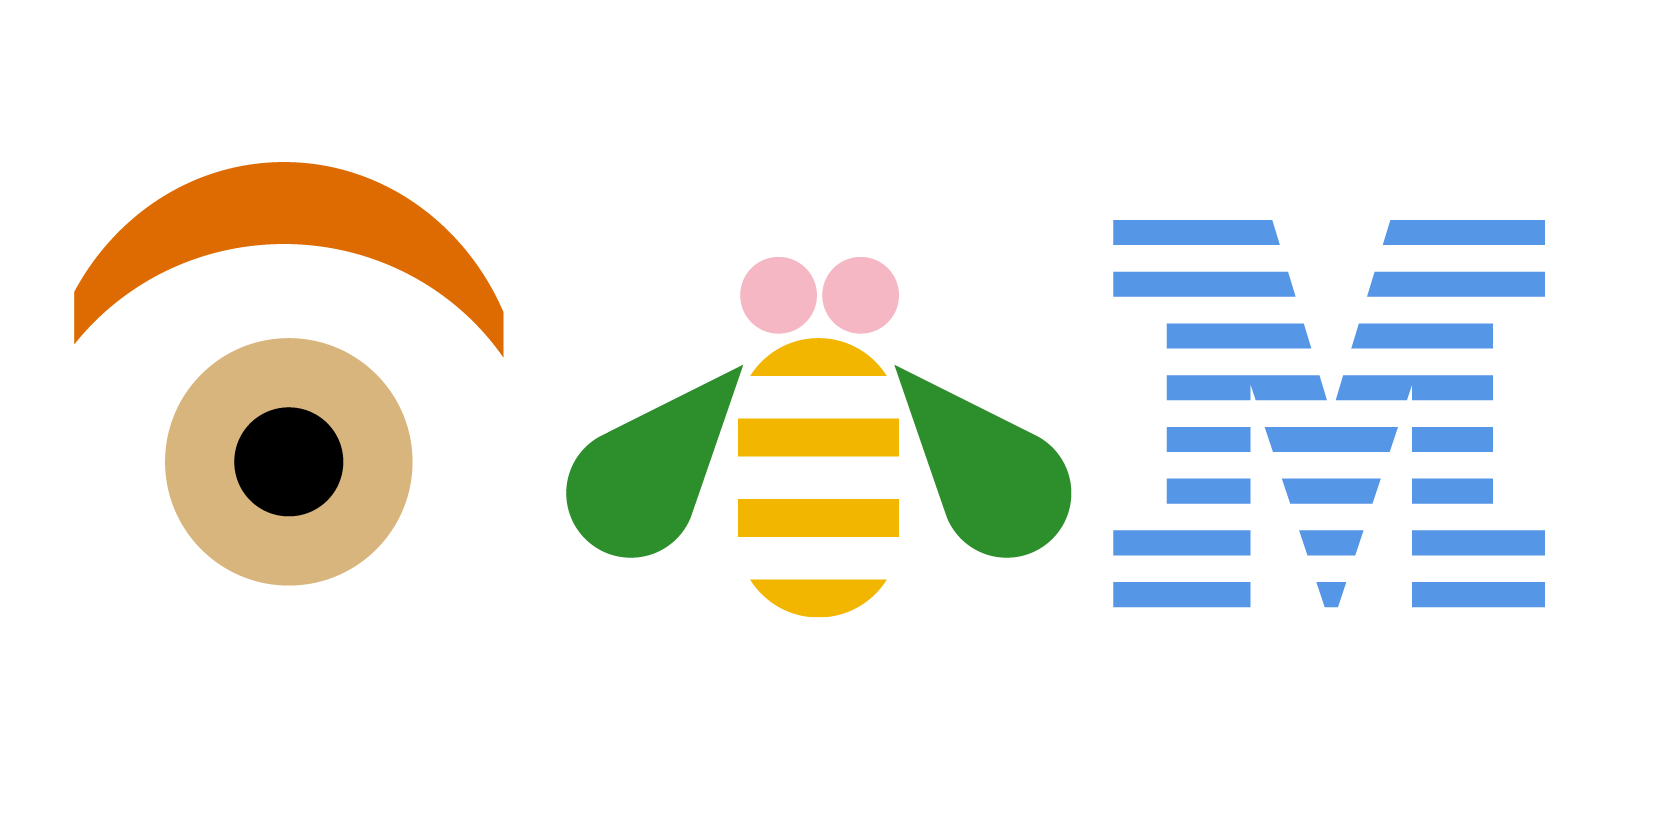 Logo Graphic Design Ibm Free HQ Image PNG Image